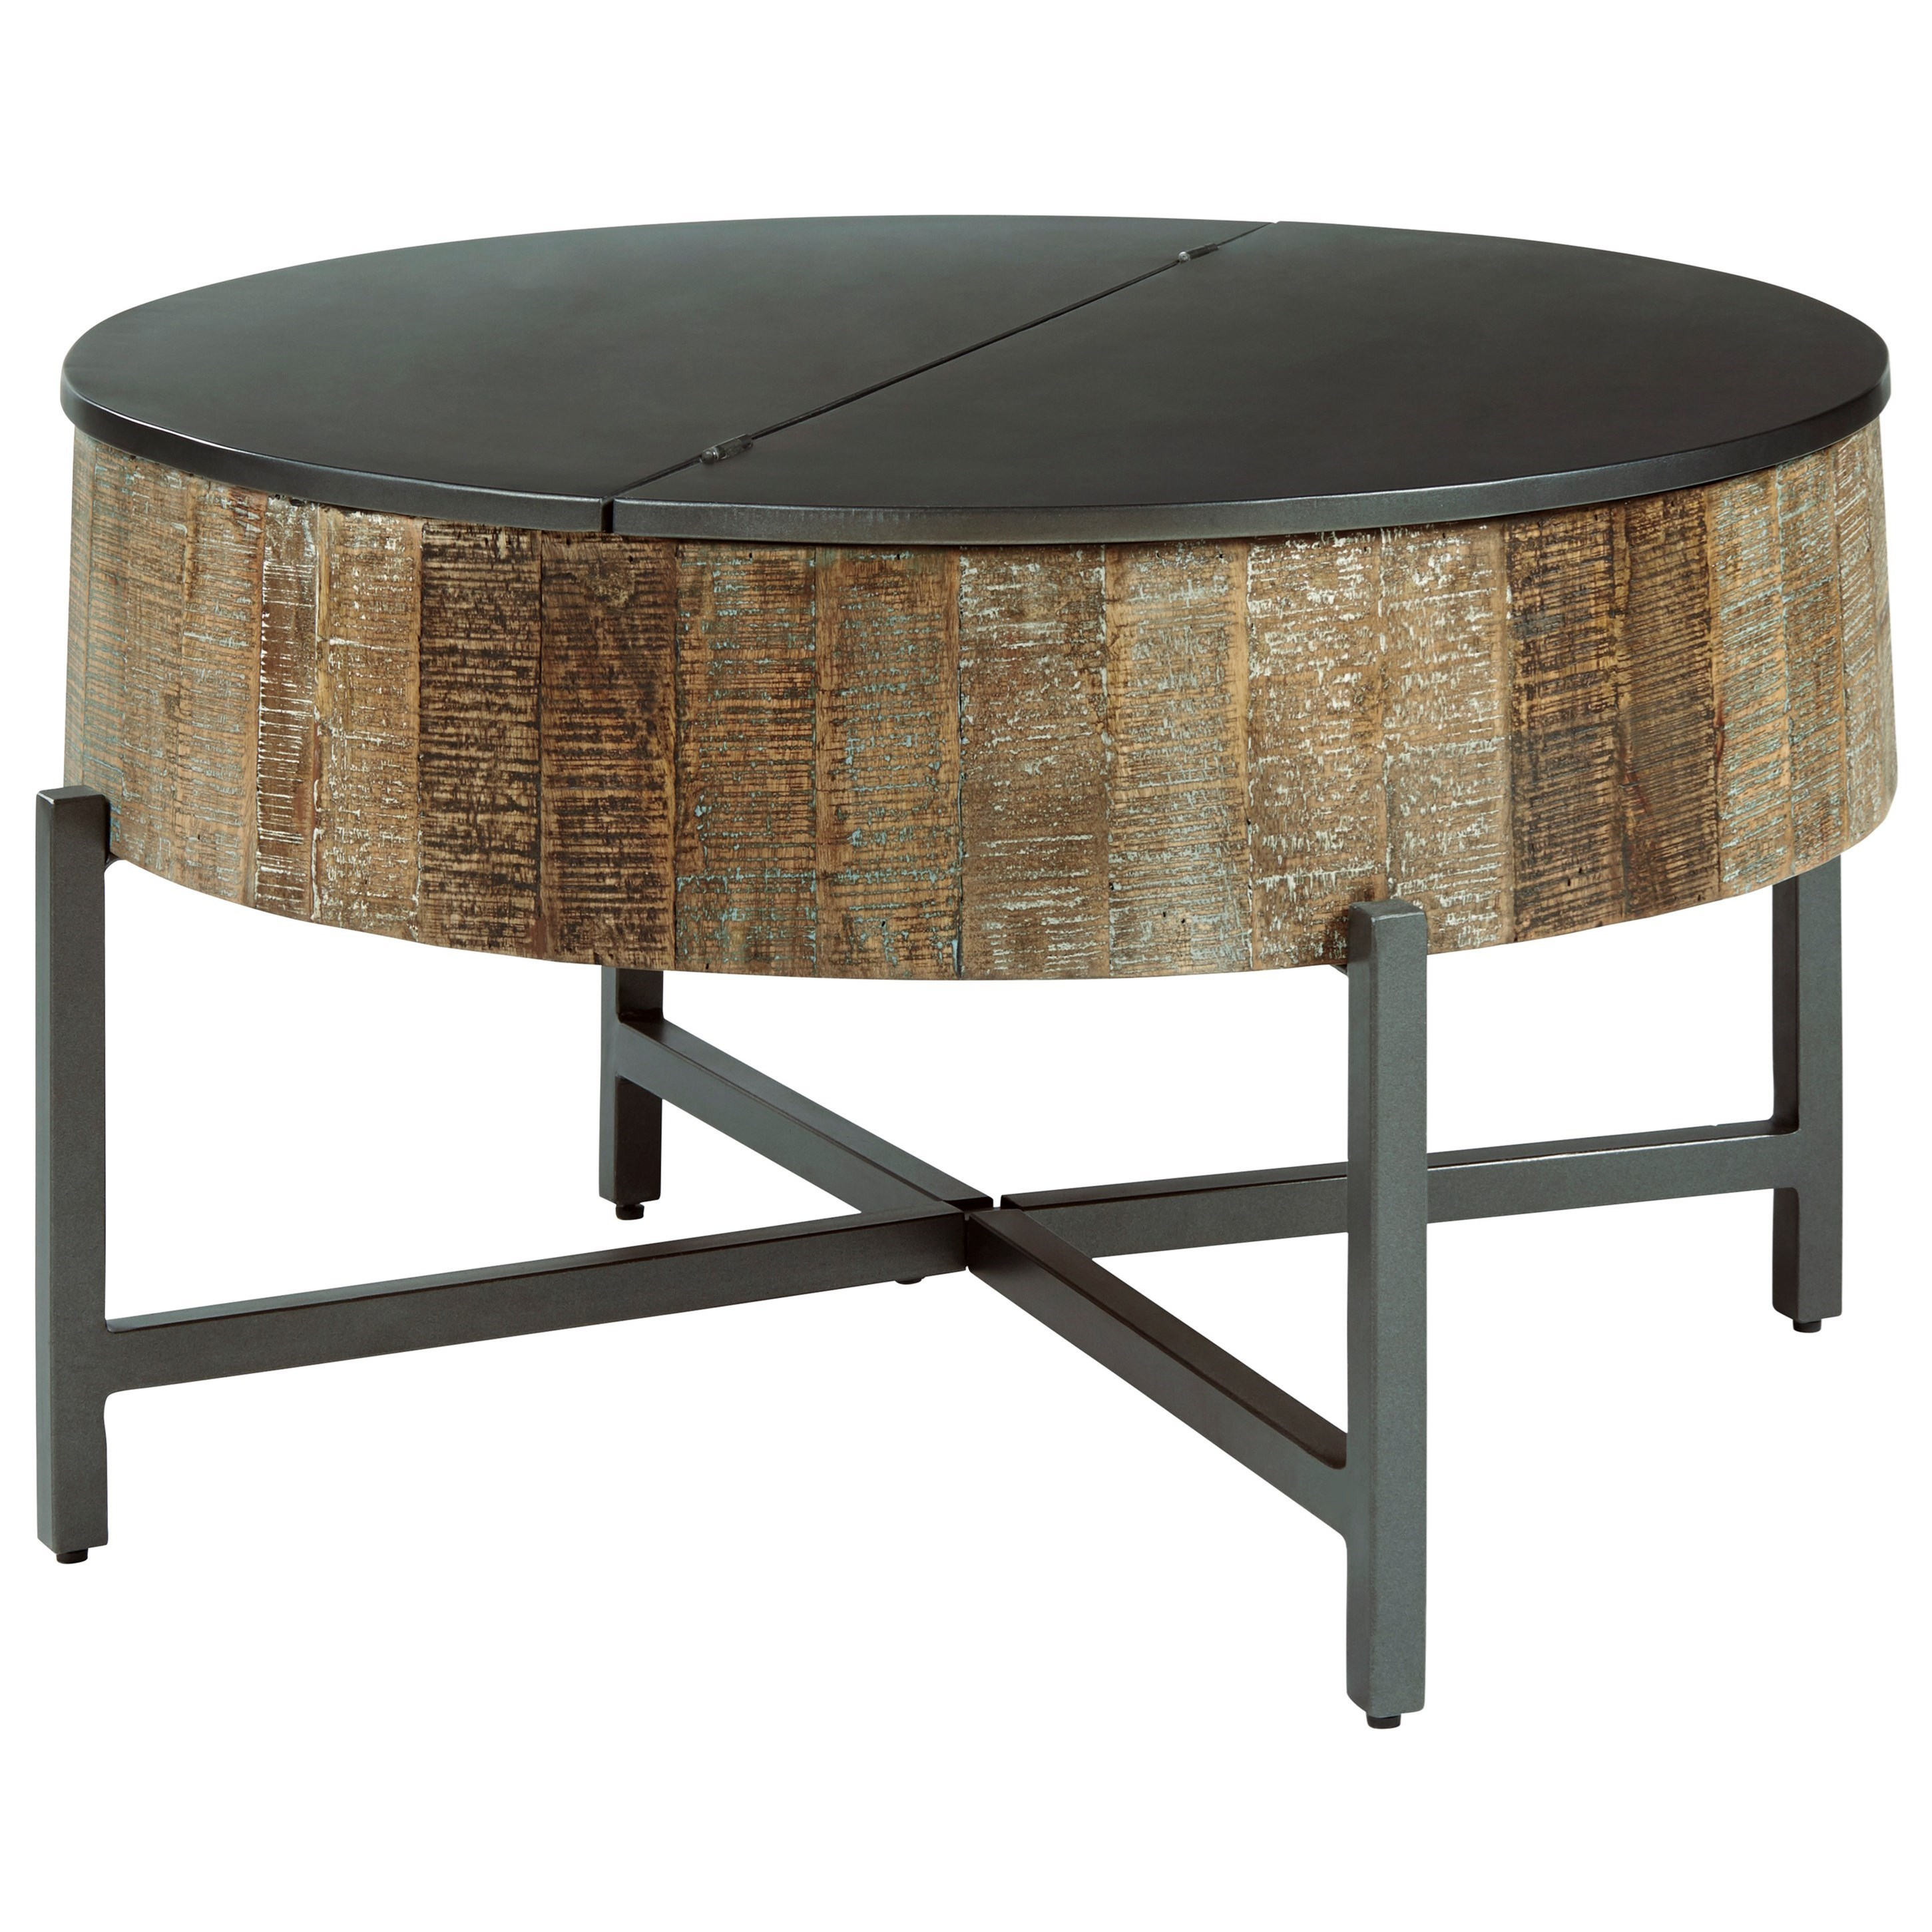 - Signature Design By Ashley Nashbryn T240-8 Rustic Round Cocktail